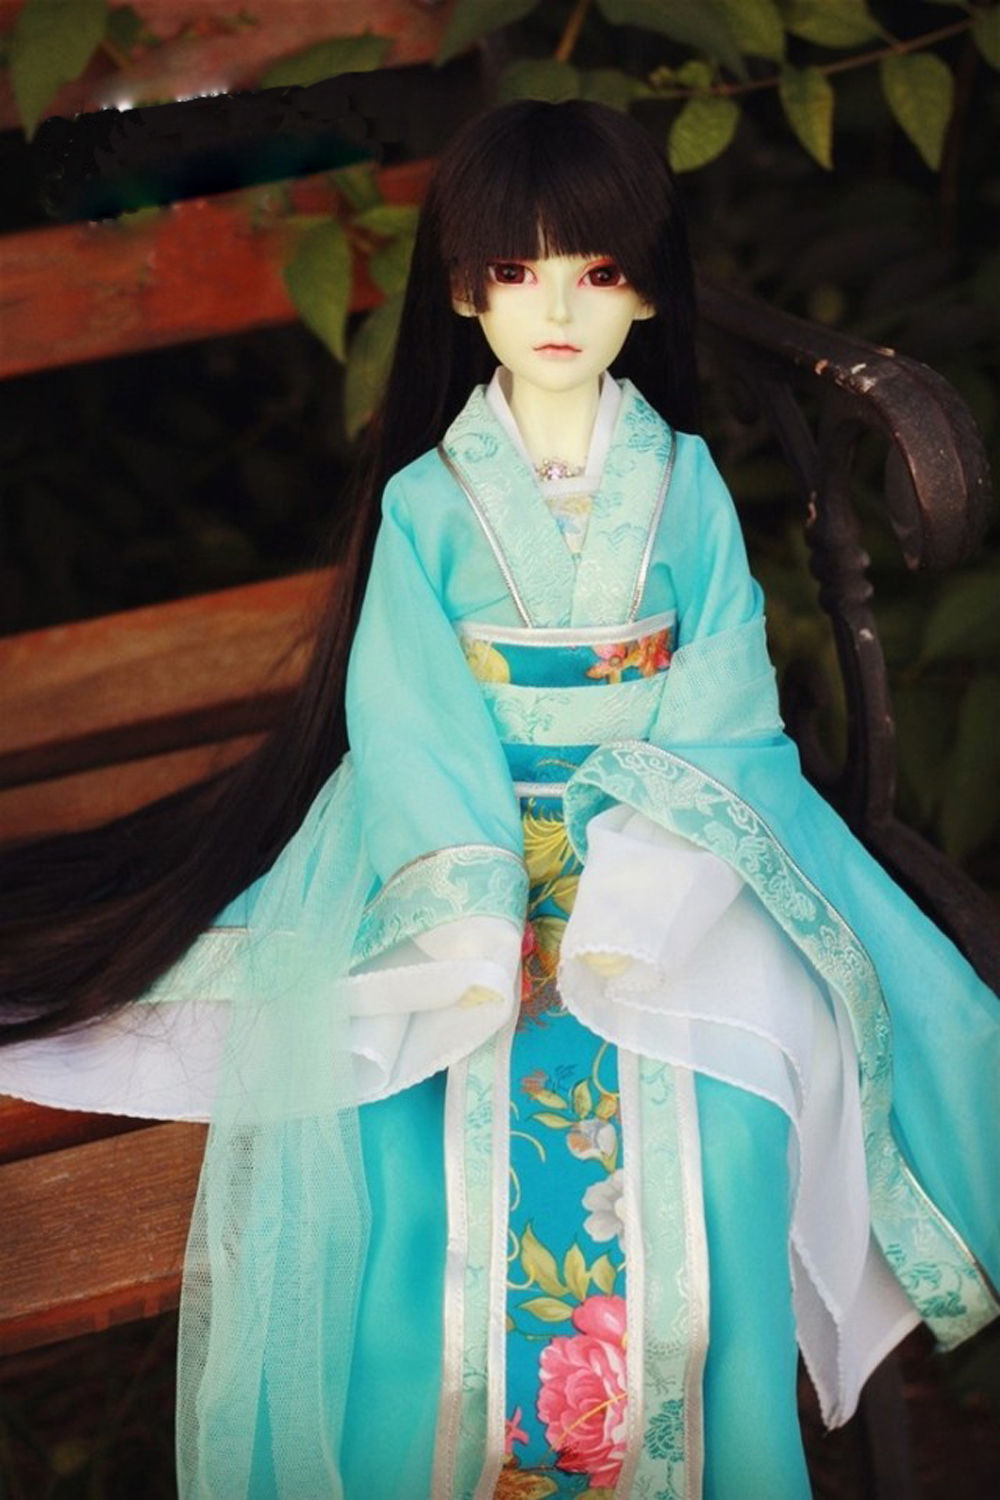 [wamami]699# Blue Ancient Costume/Dress/ Outfit For 1/3 SD AOD DOD DZ BJD Doll 699 blue ancient costume dress outfit for 1 4 msd aod dod dz bjd dollfie